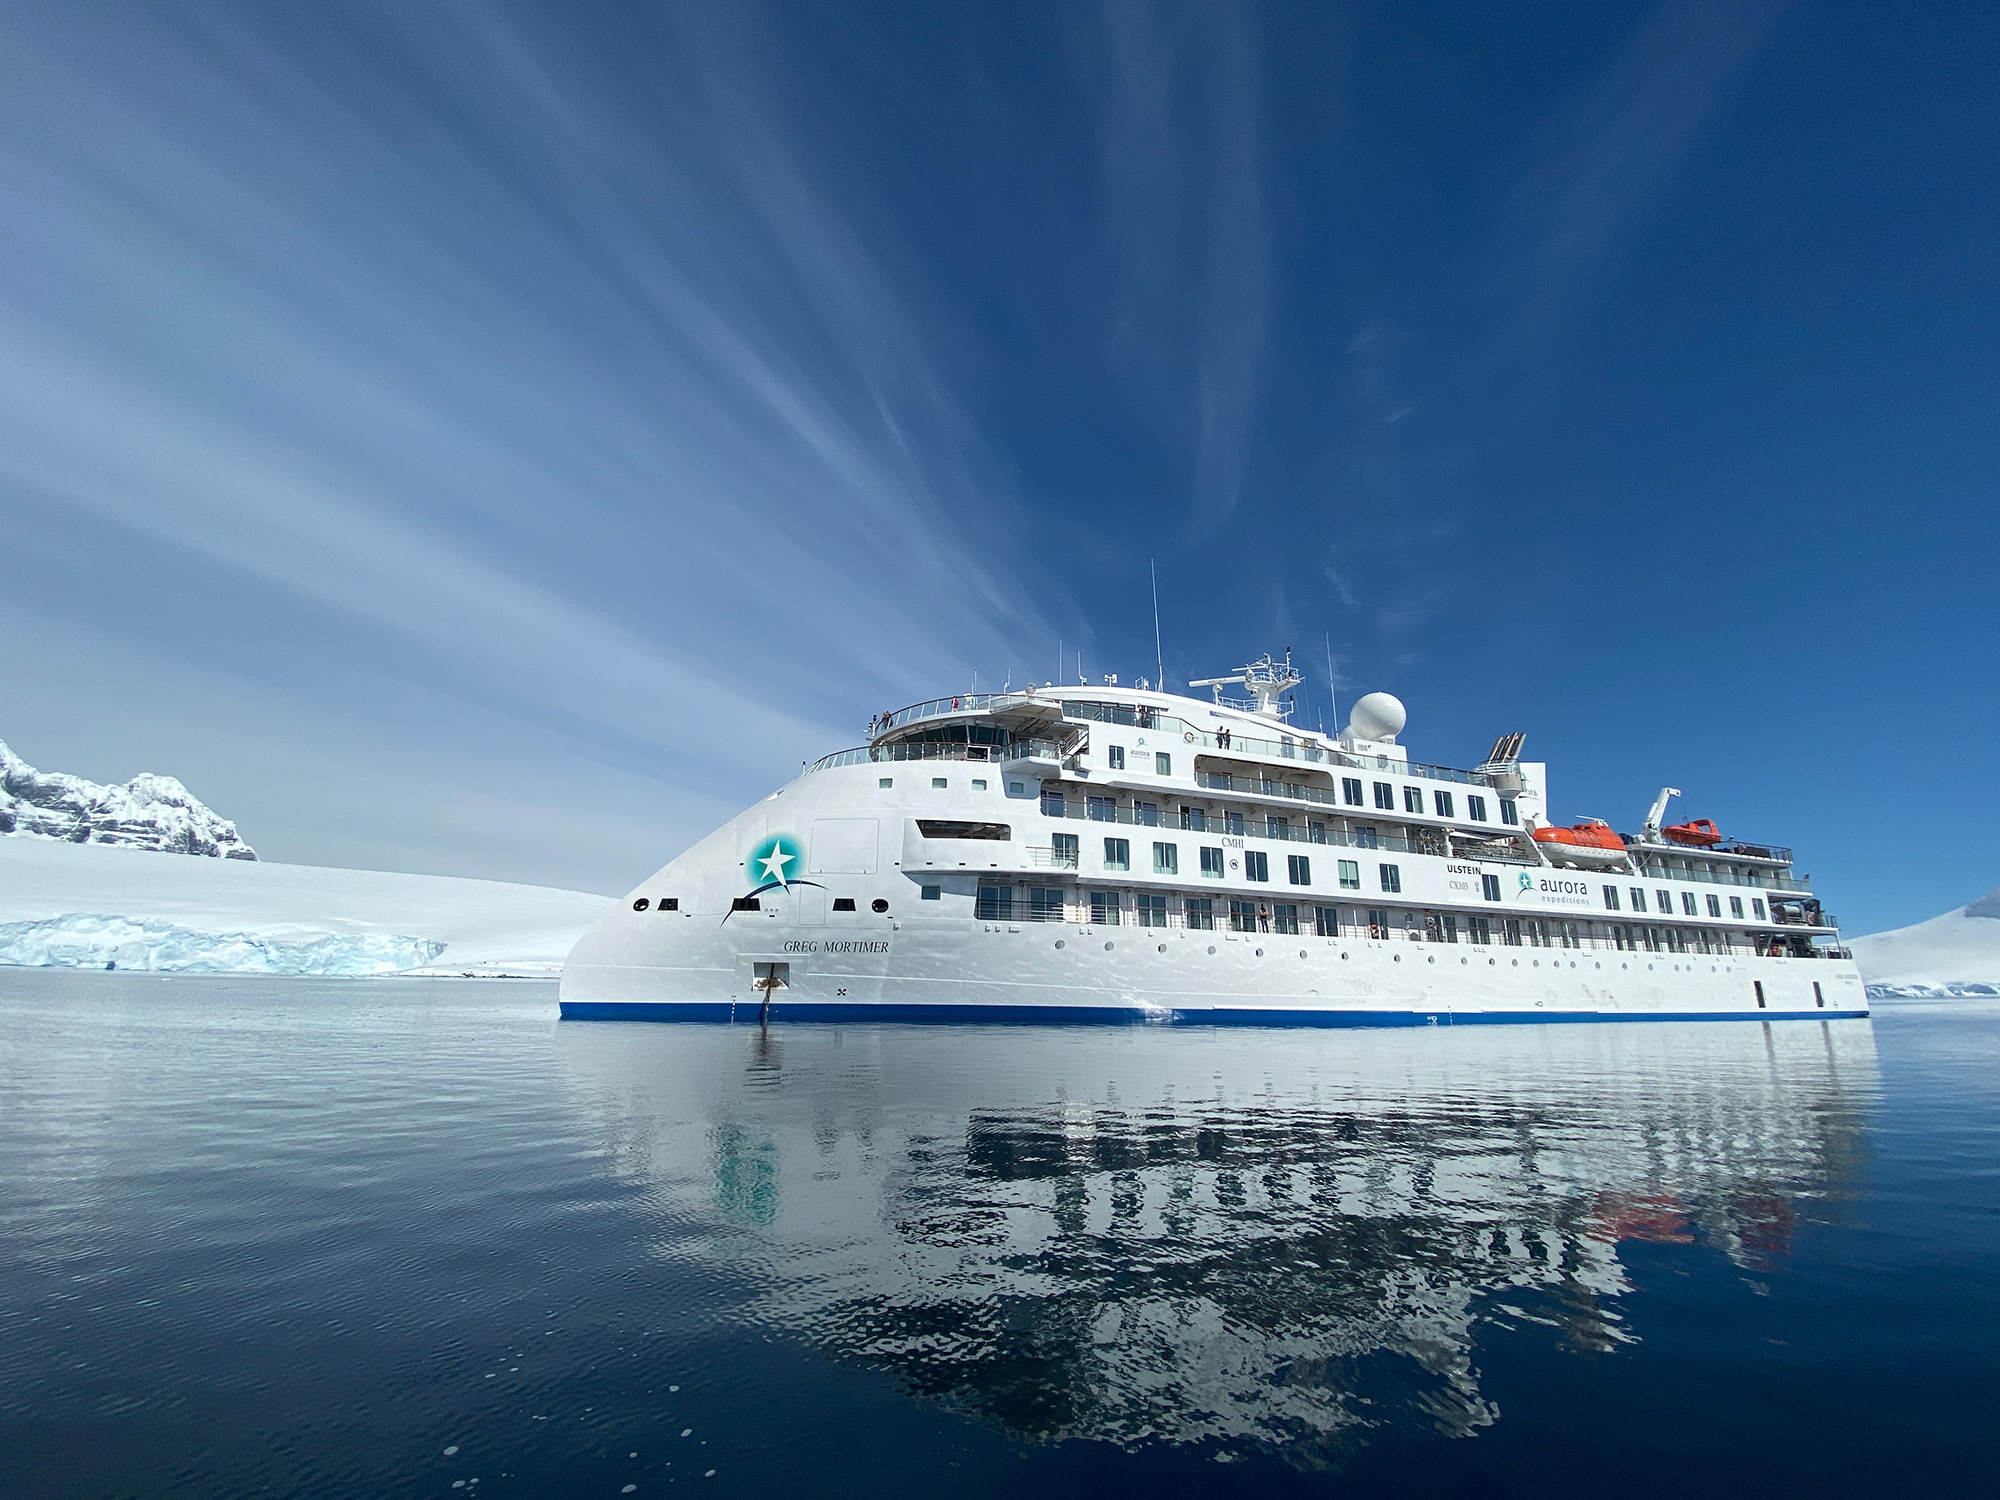 'Greg Mortimer' - X-BOW expedition cruise vessel, photo: Aurora Expeditions.